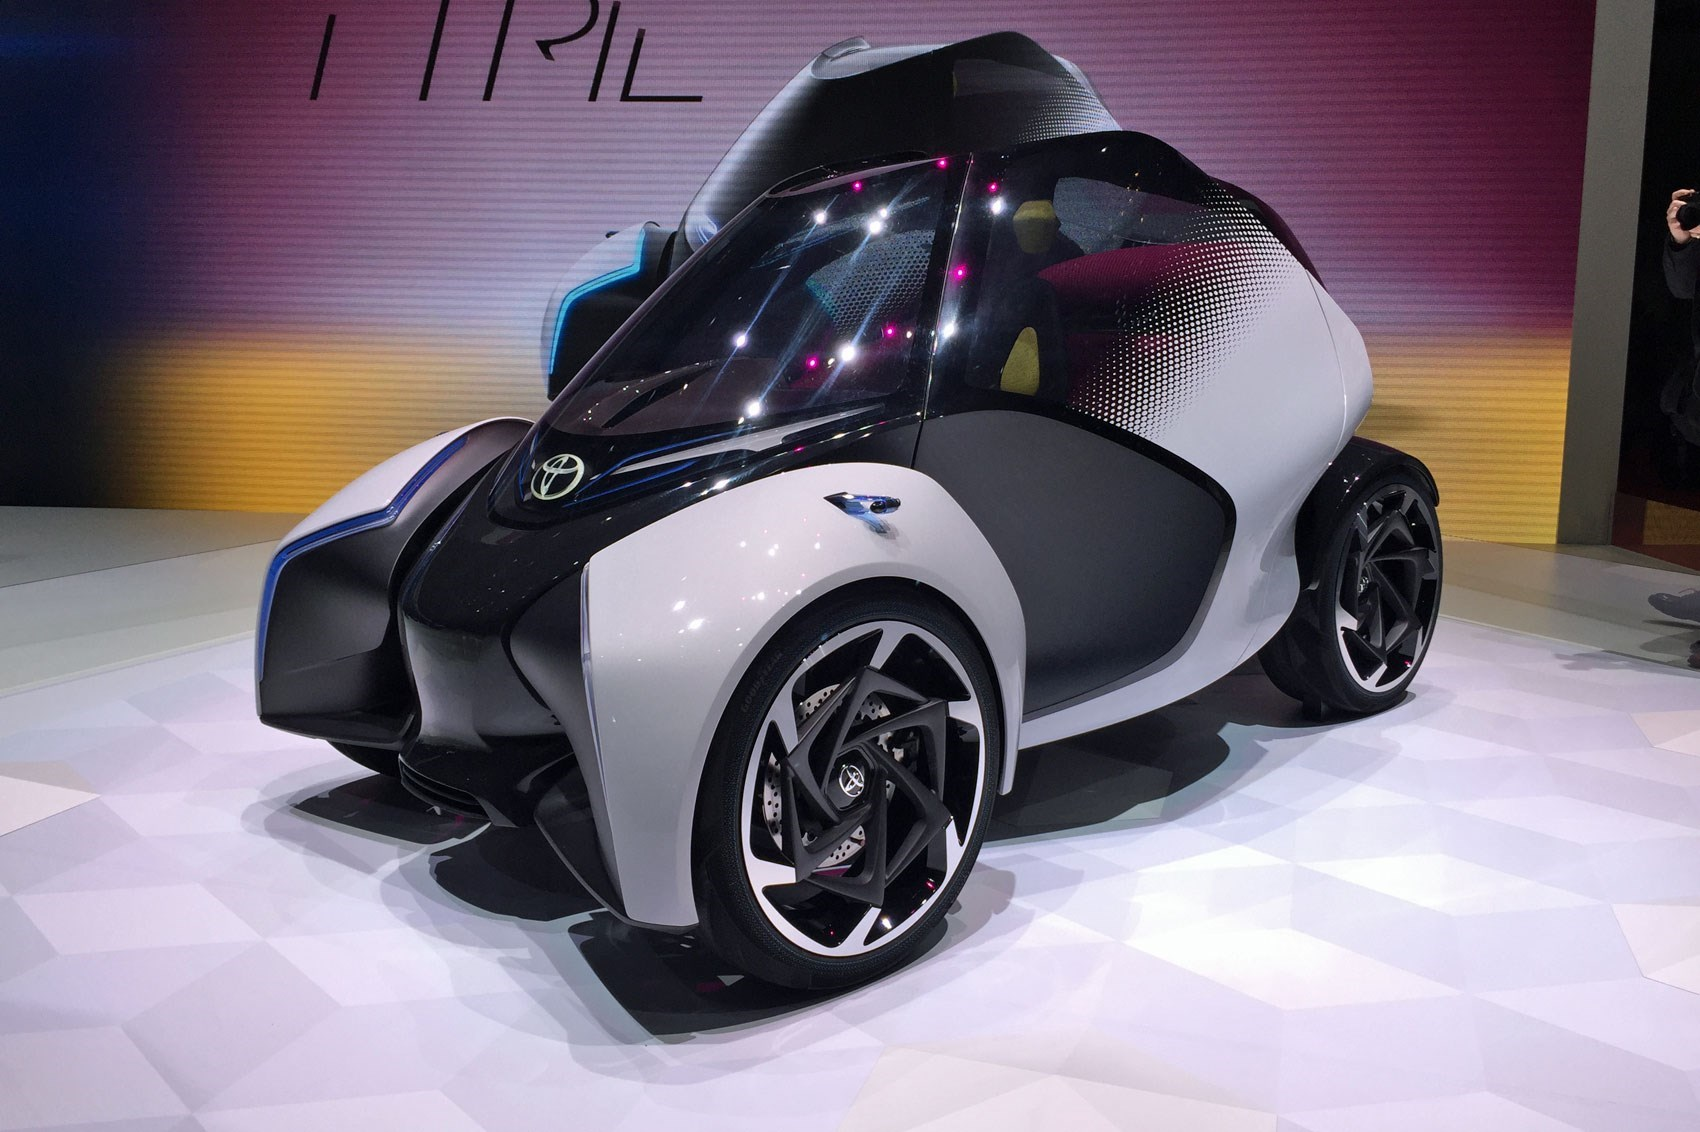 Lean on me: Toyota\'s trick i-TRIL concept car by CAR Magazine